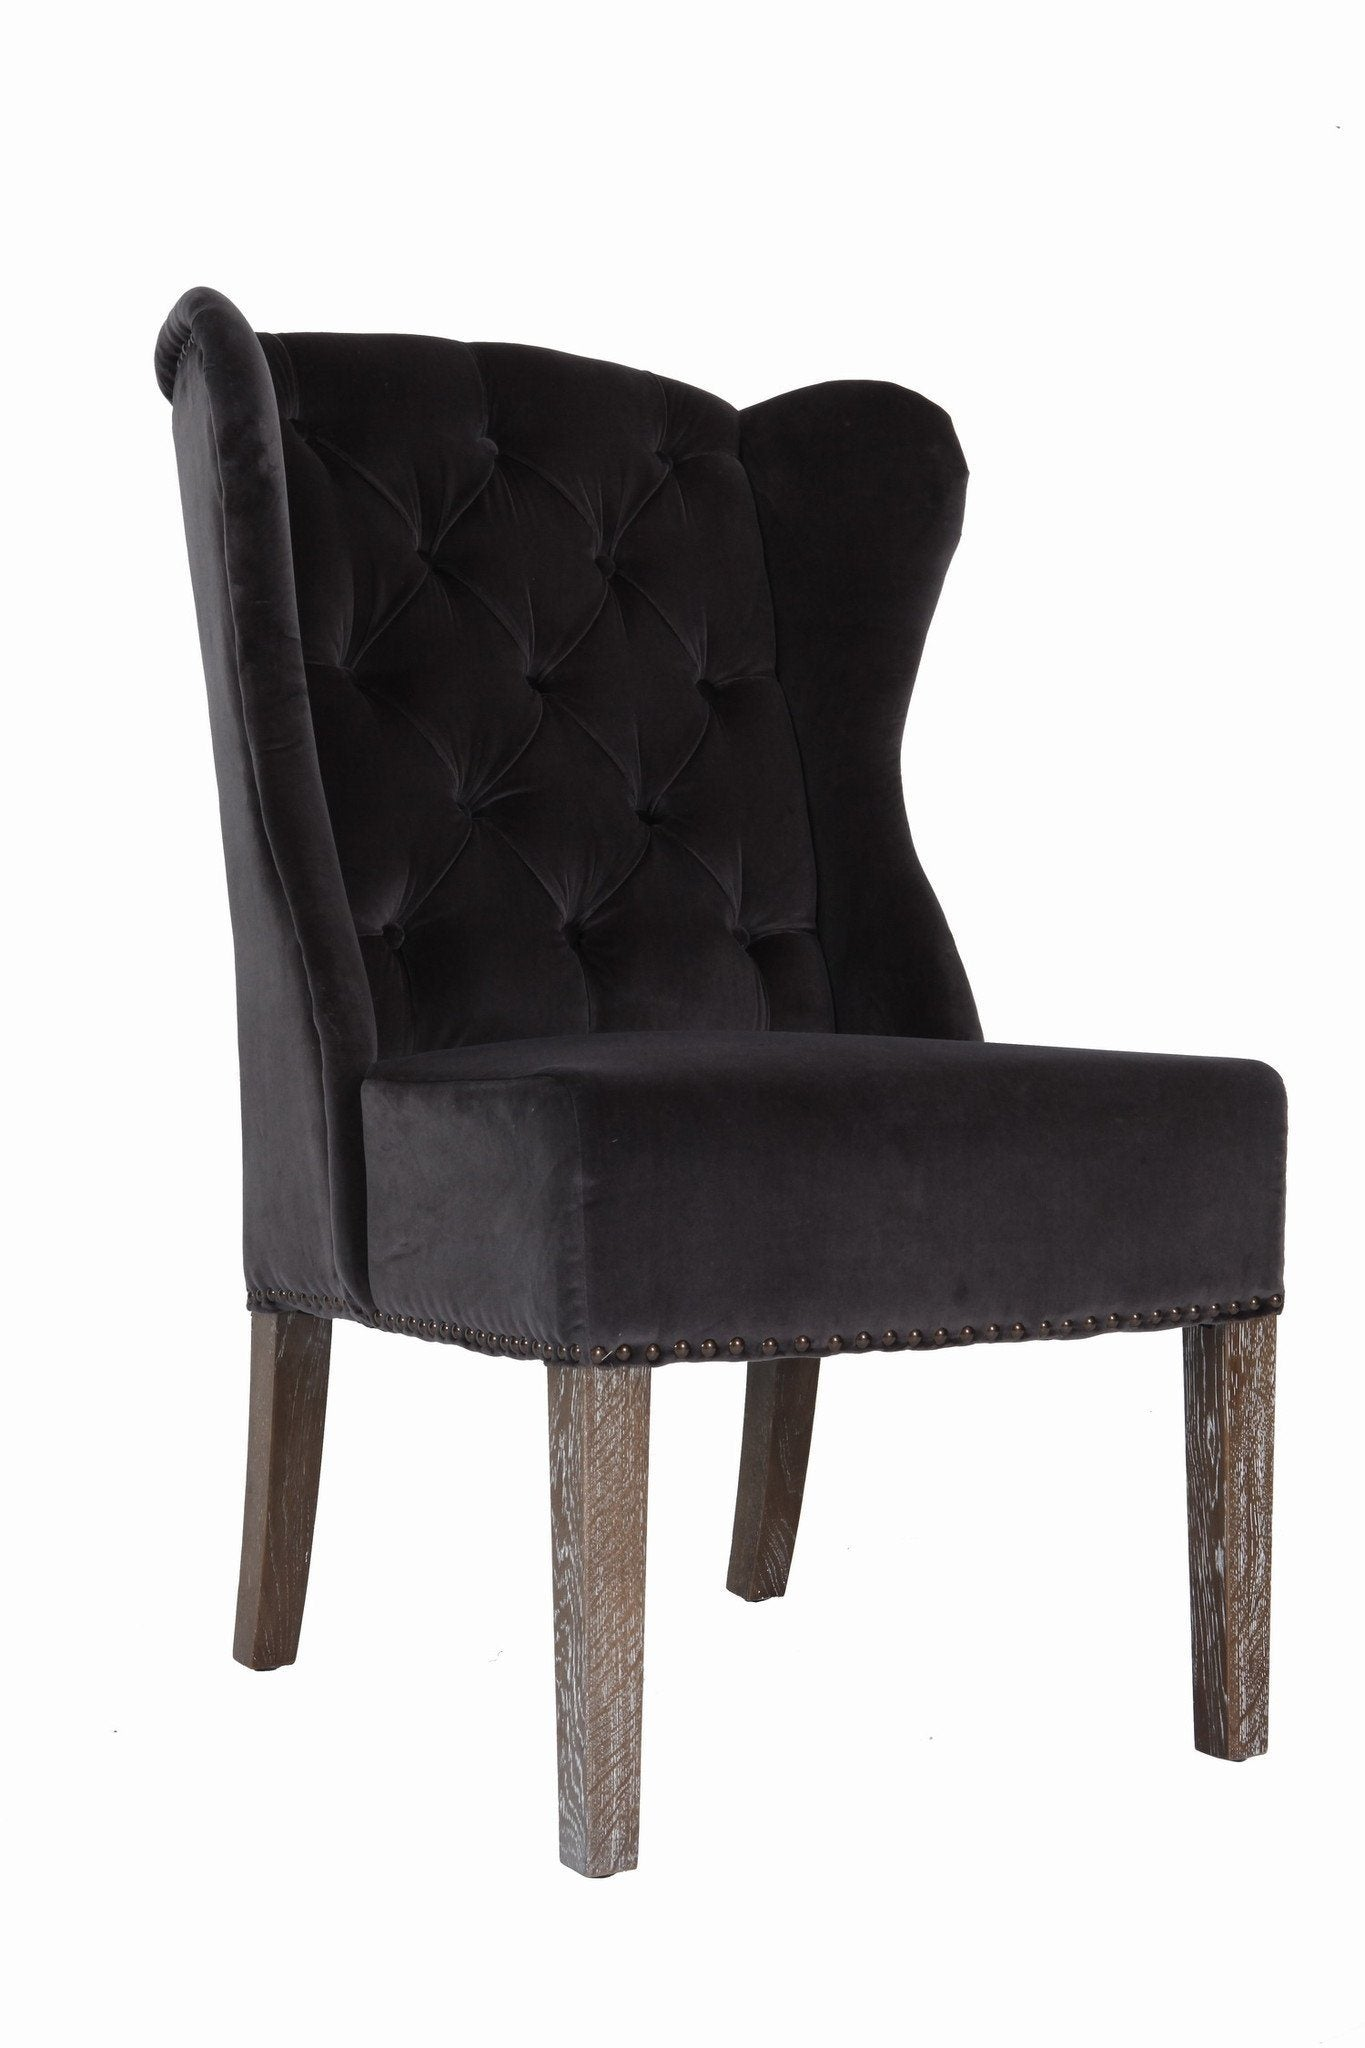 Babar Chair - Taupe Velvet/Oak Legs - Calgary Furniture